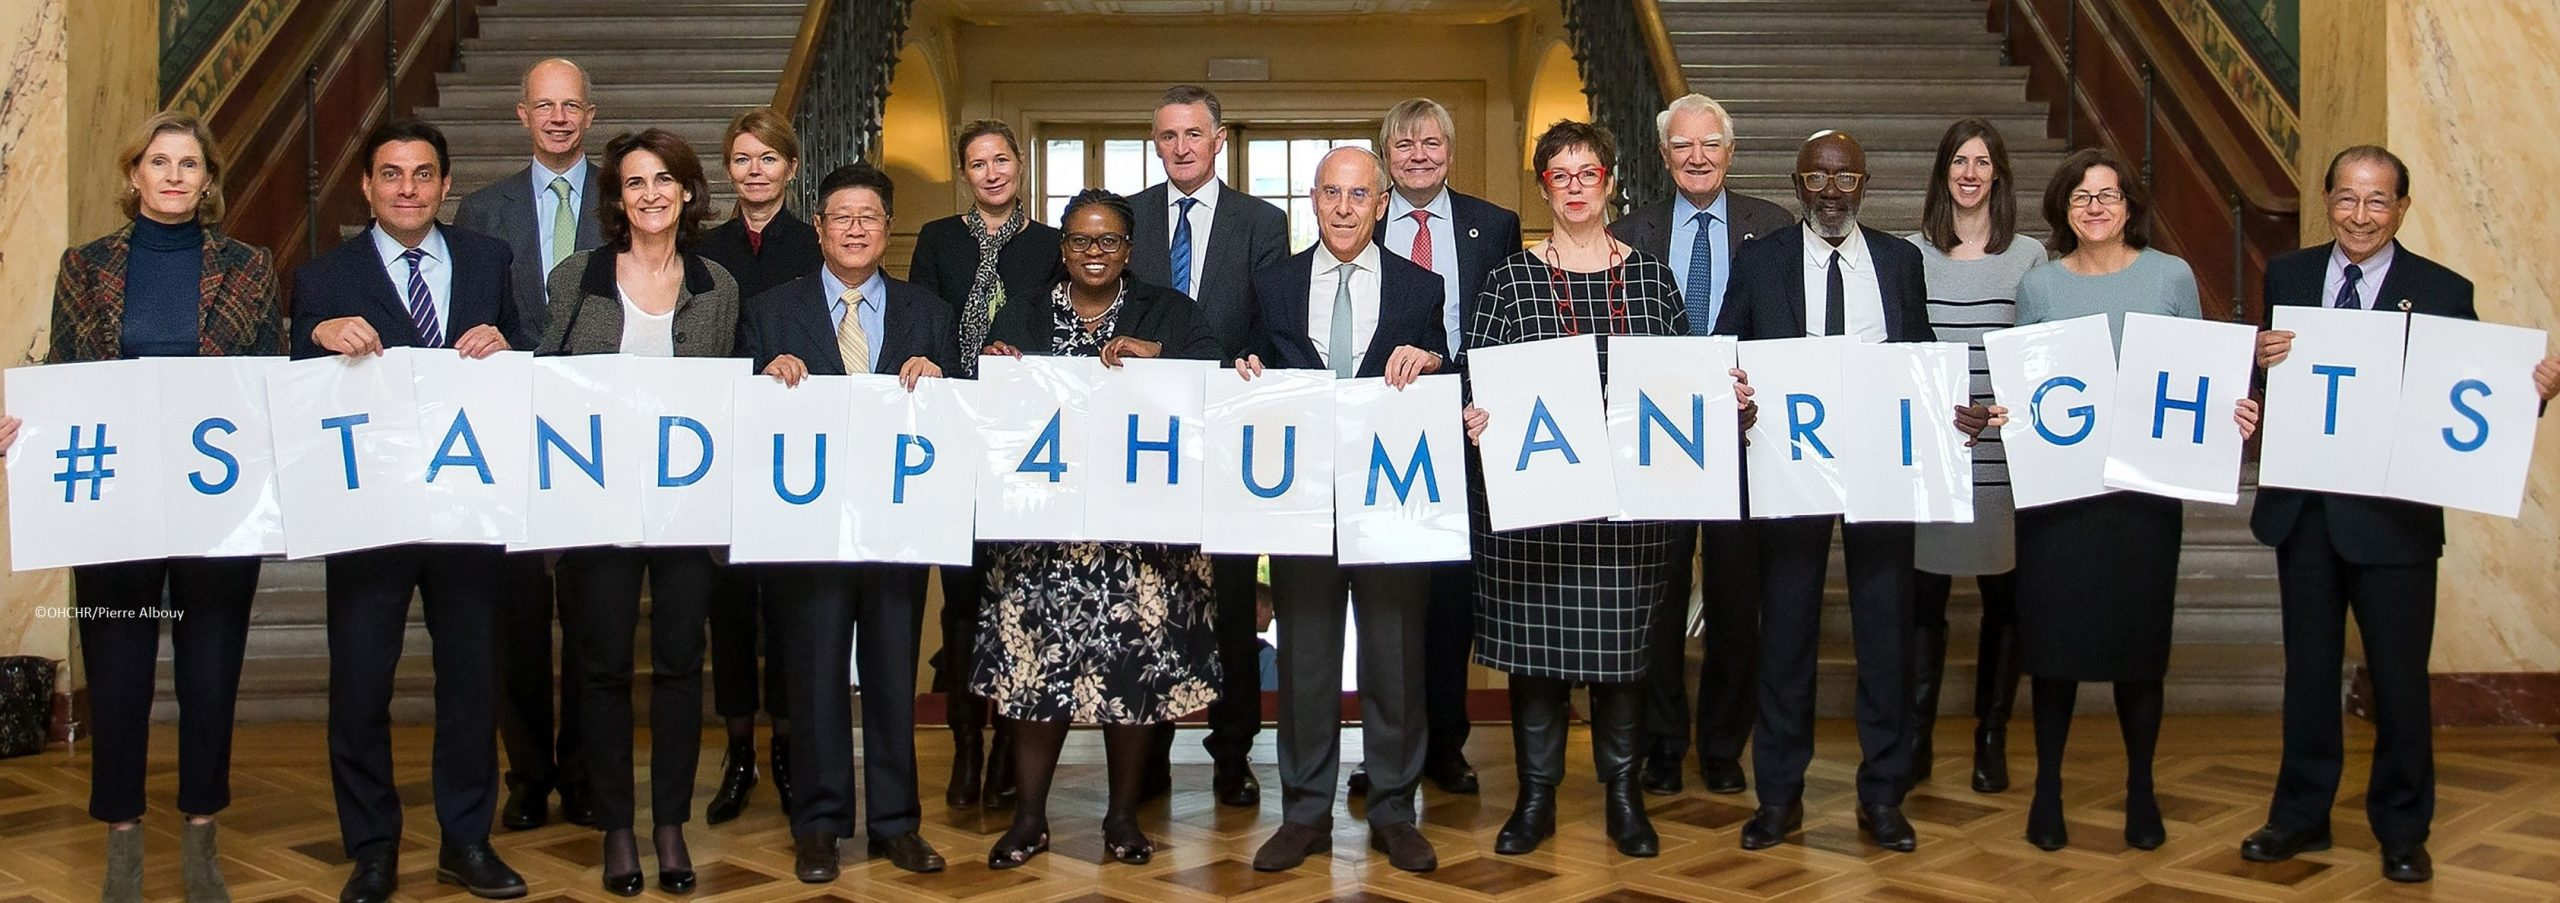 United Nations Global Compact: group photo with 2017 UN Forum on Business and Human Rights participants. Palais Wilson, November 30, 2017, Geneva, Switzerland. ©OHCHR/Pierre Albouy